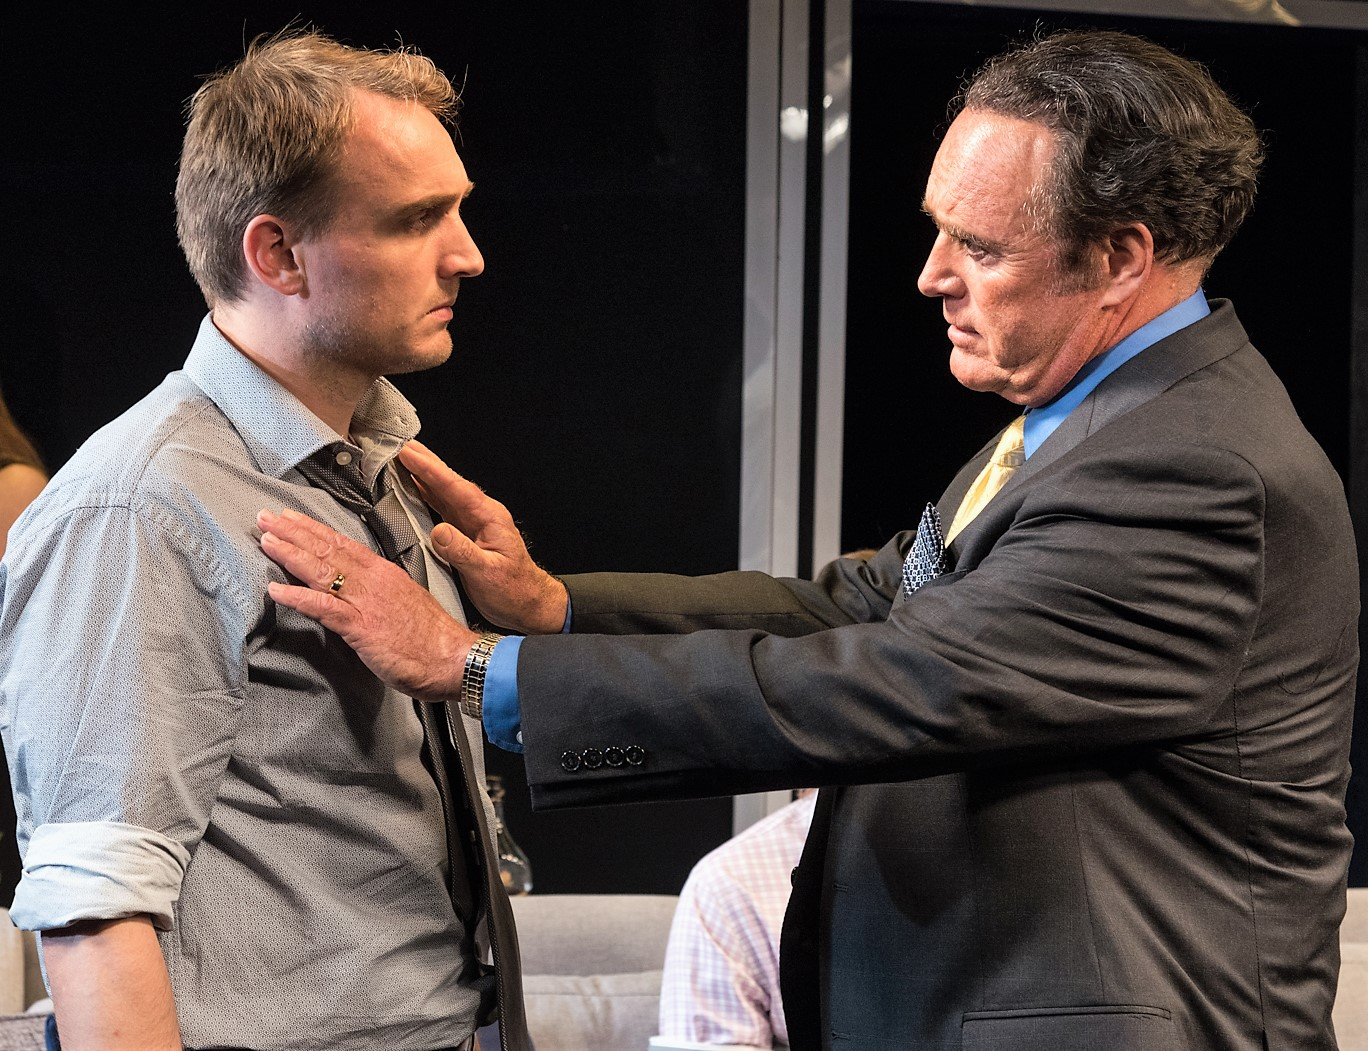 Big Jim (James Kiberd, right) tries to convince Jim Jr. (Ben Curtis) of his sins. Top, from left: Jim Jr. receives comfort from Grandma Viv'in (Kathleen Huber), Kimmy (Julie Campbell) and Bobby (Jacques Mitchell). Photographs by Russ Rowland.